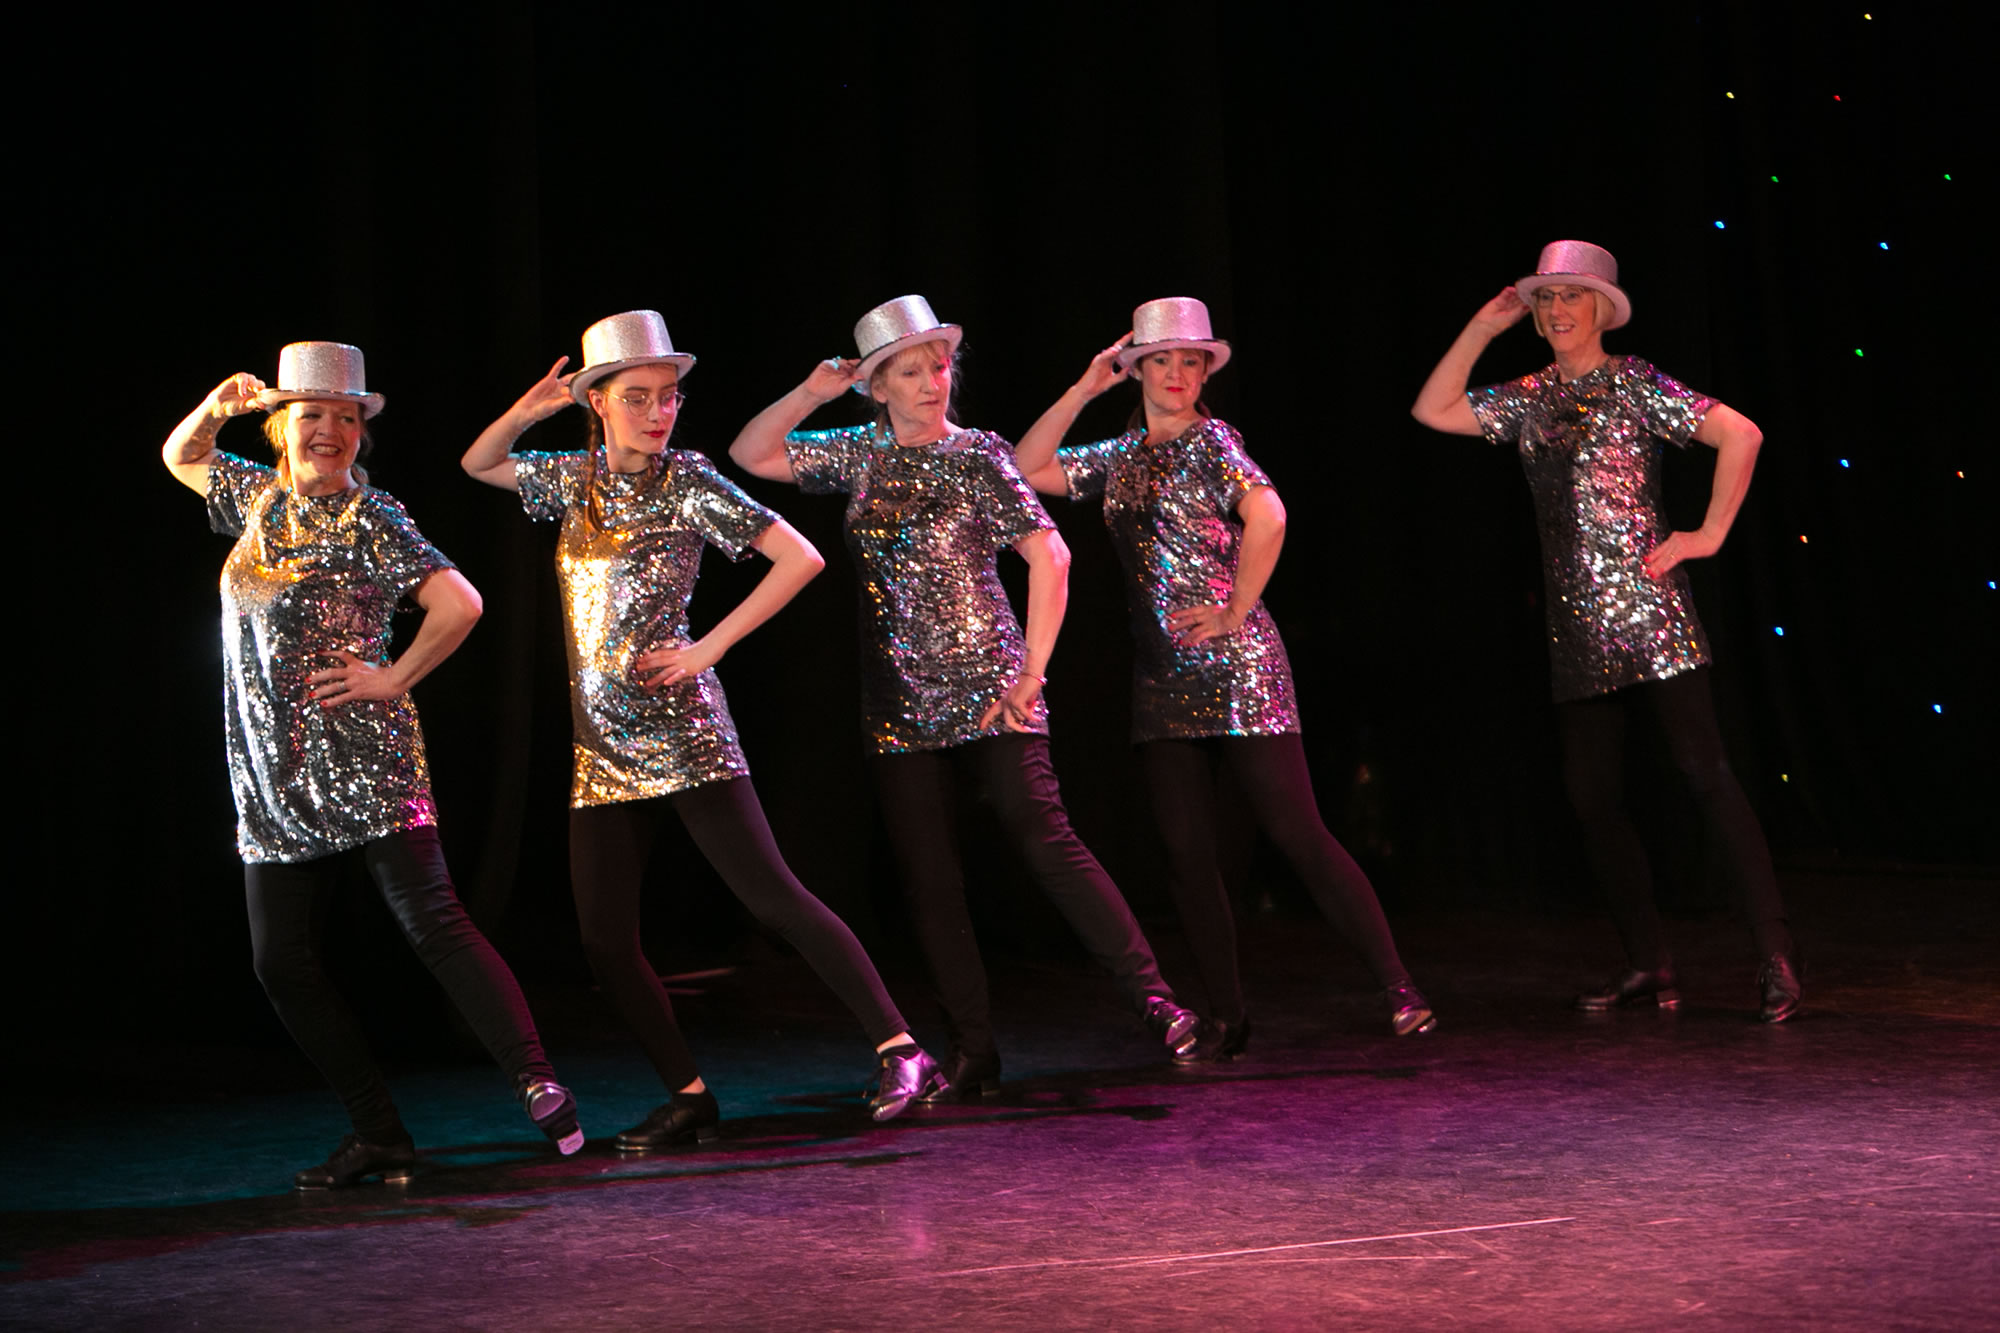 Hitchin_School_of_Dance_Show_2019-SM1_2924.jpg